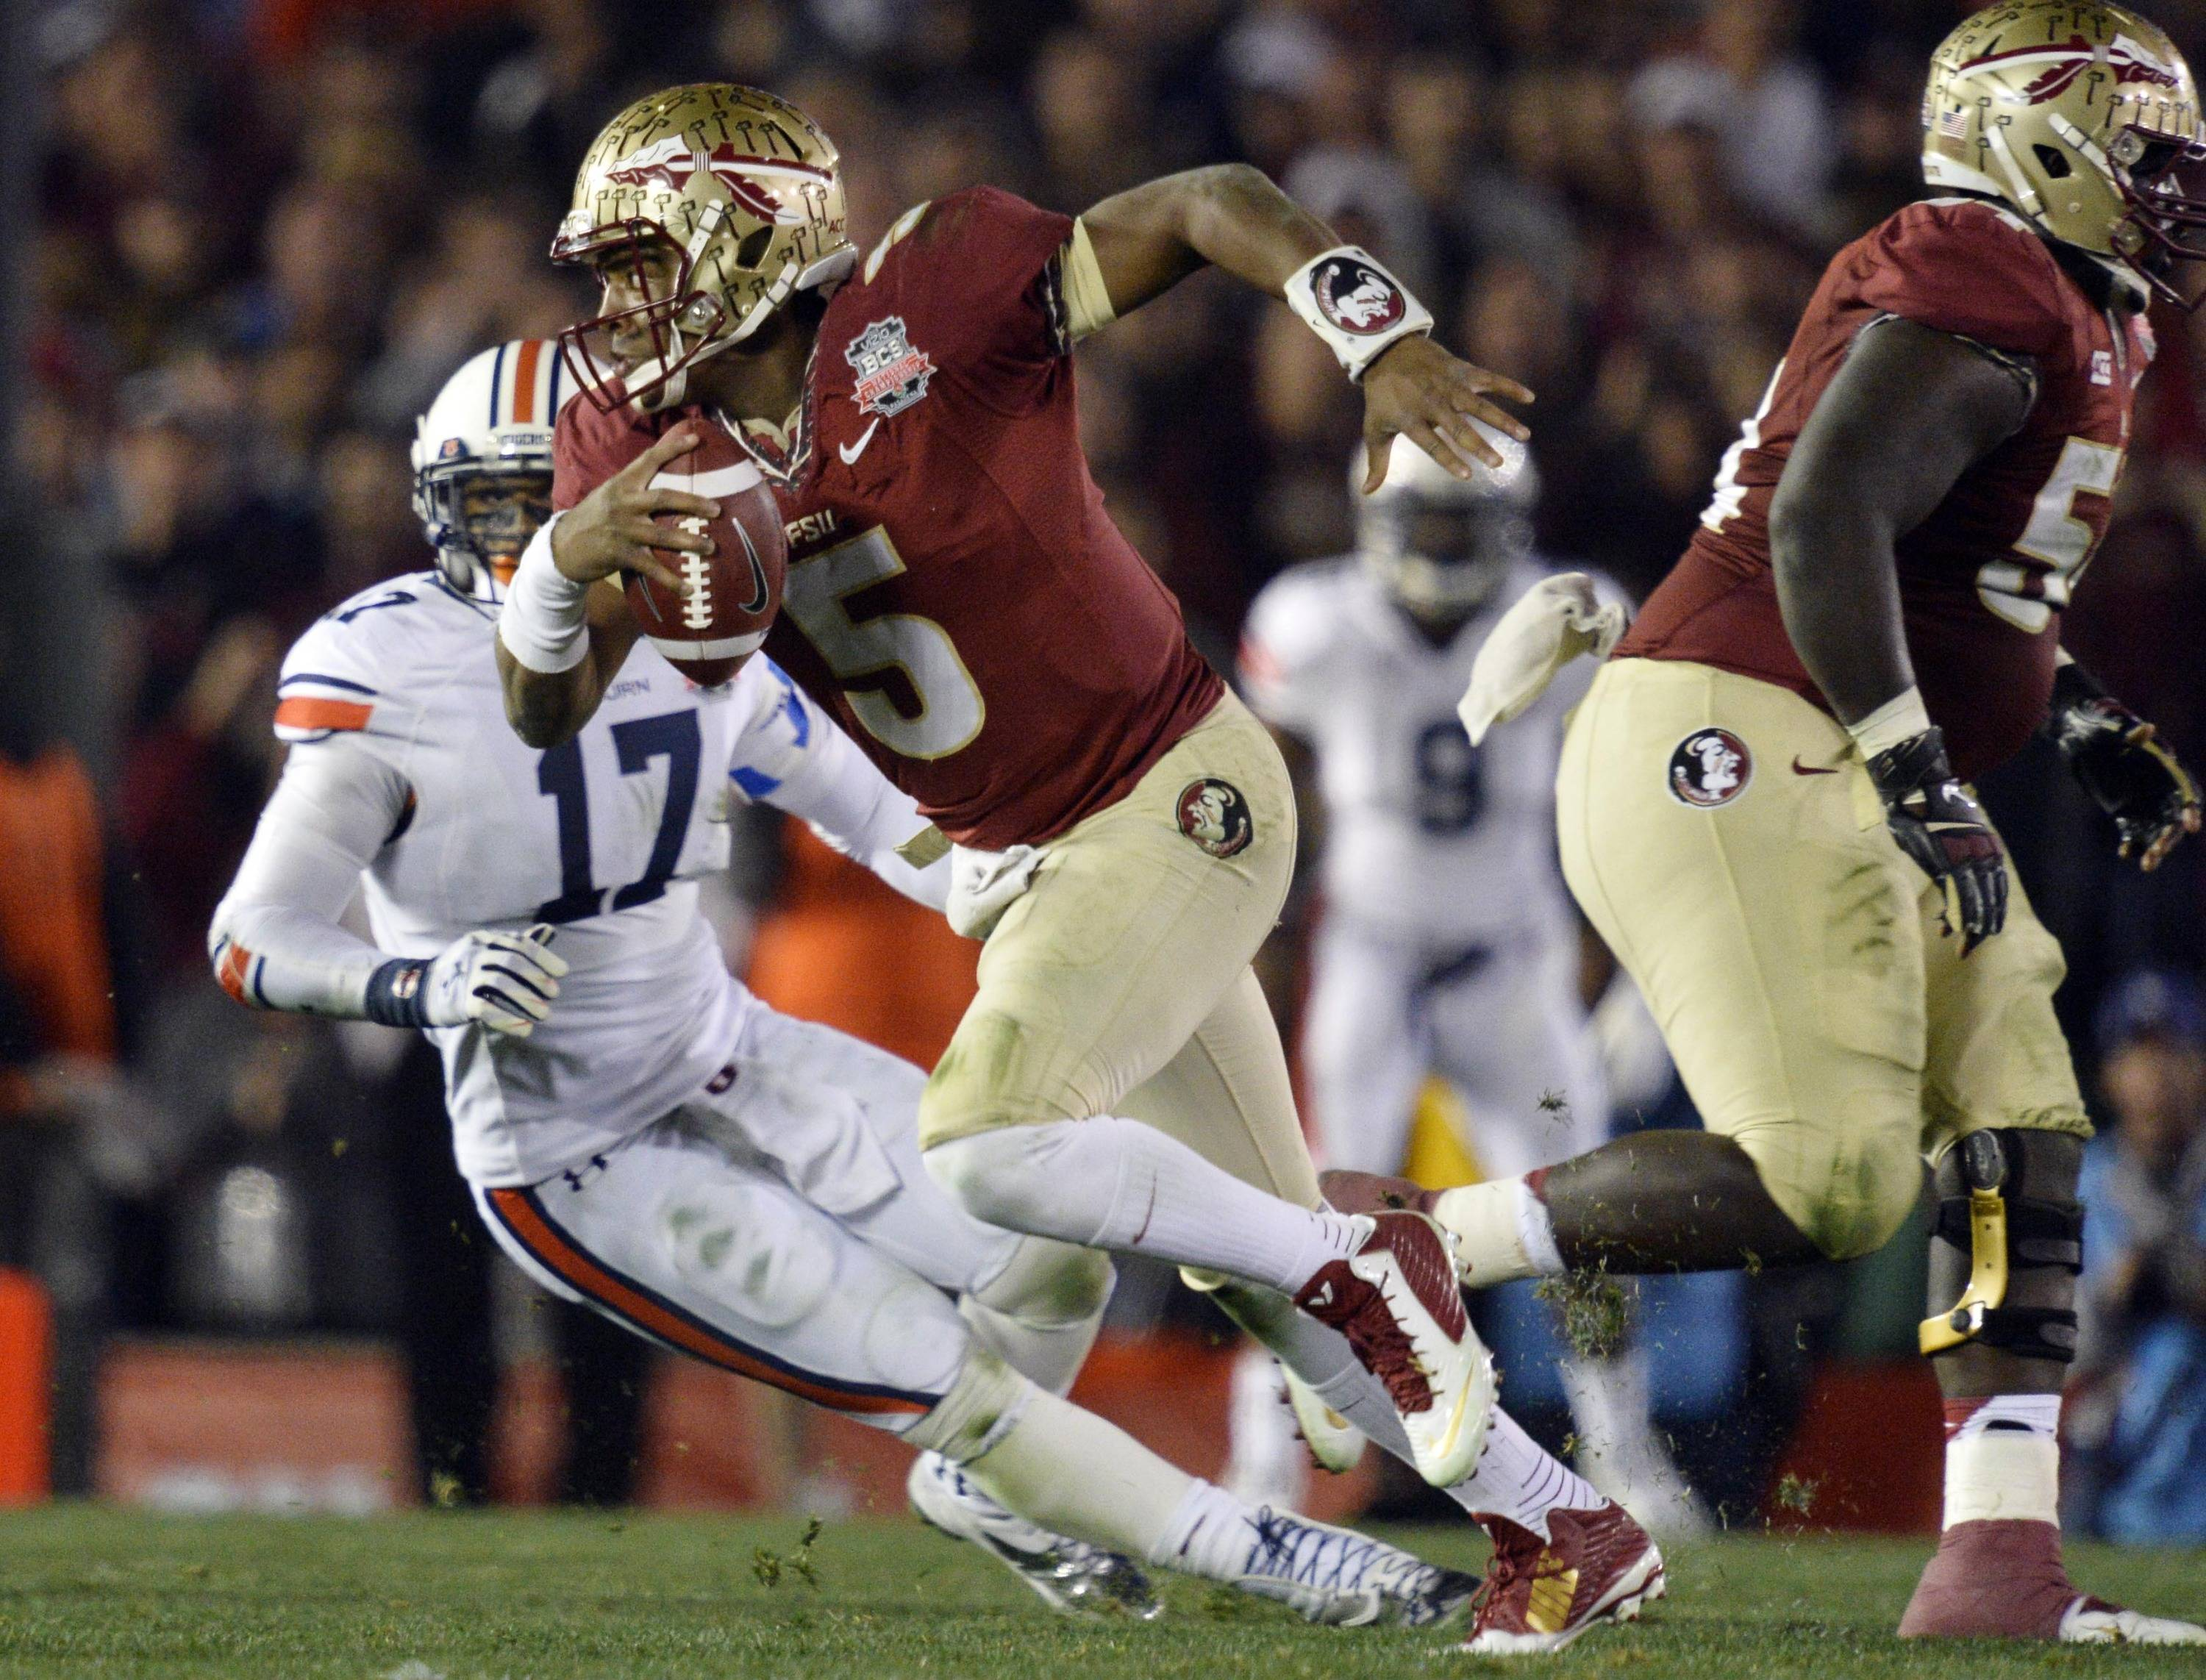 Jan 6, 2014; Pasadena, CA, USA; Florida State Seminoles quarterback Jameis Winston (5) runs past Auburn Tigers linebacker Kris Frost (17) during the first half of the 2014 BCS National Championship game at the Rose Bowl.  Mandatory Credit: Robert Hanashiro-USA TODAY Sports